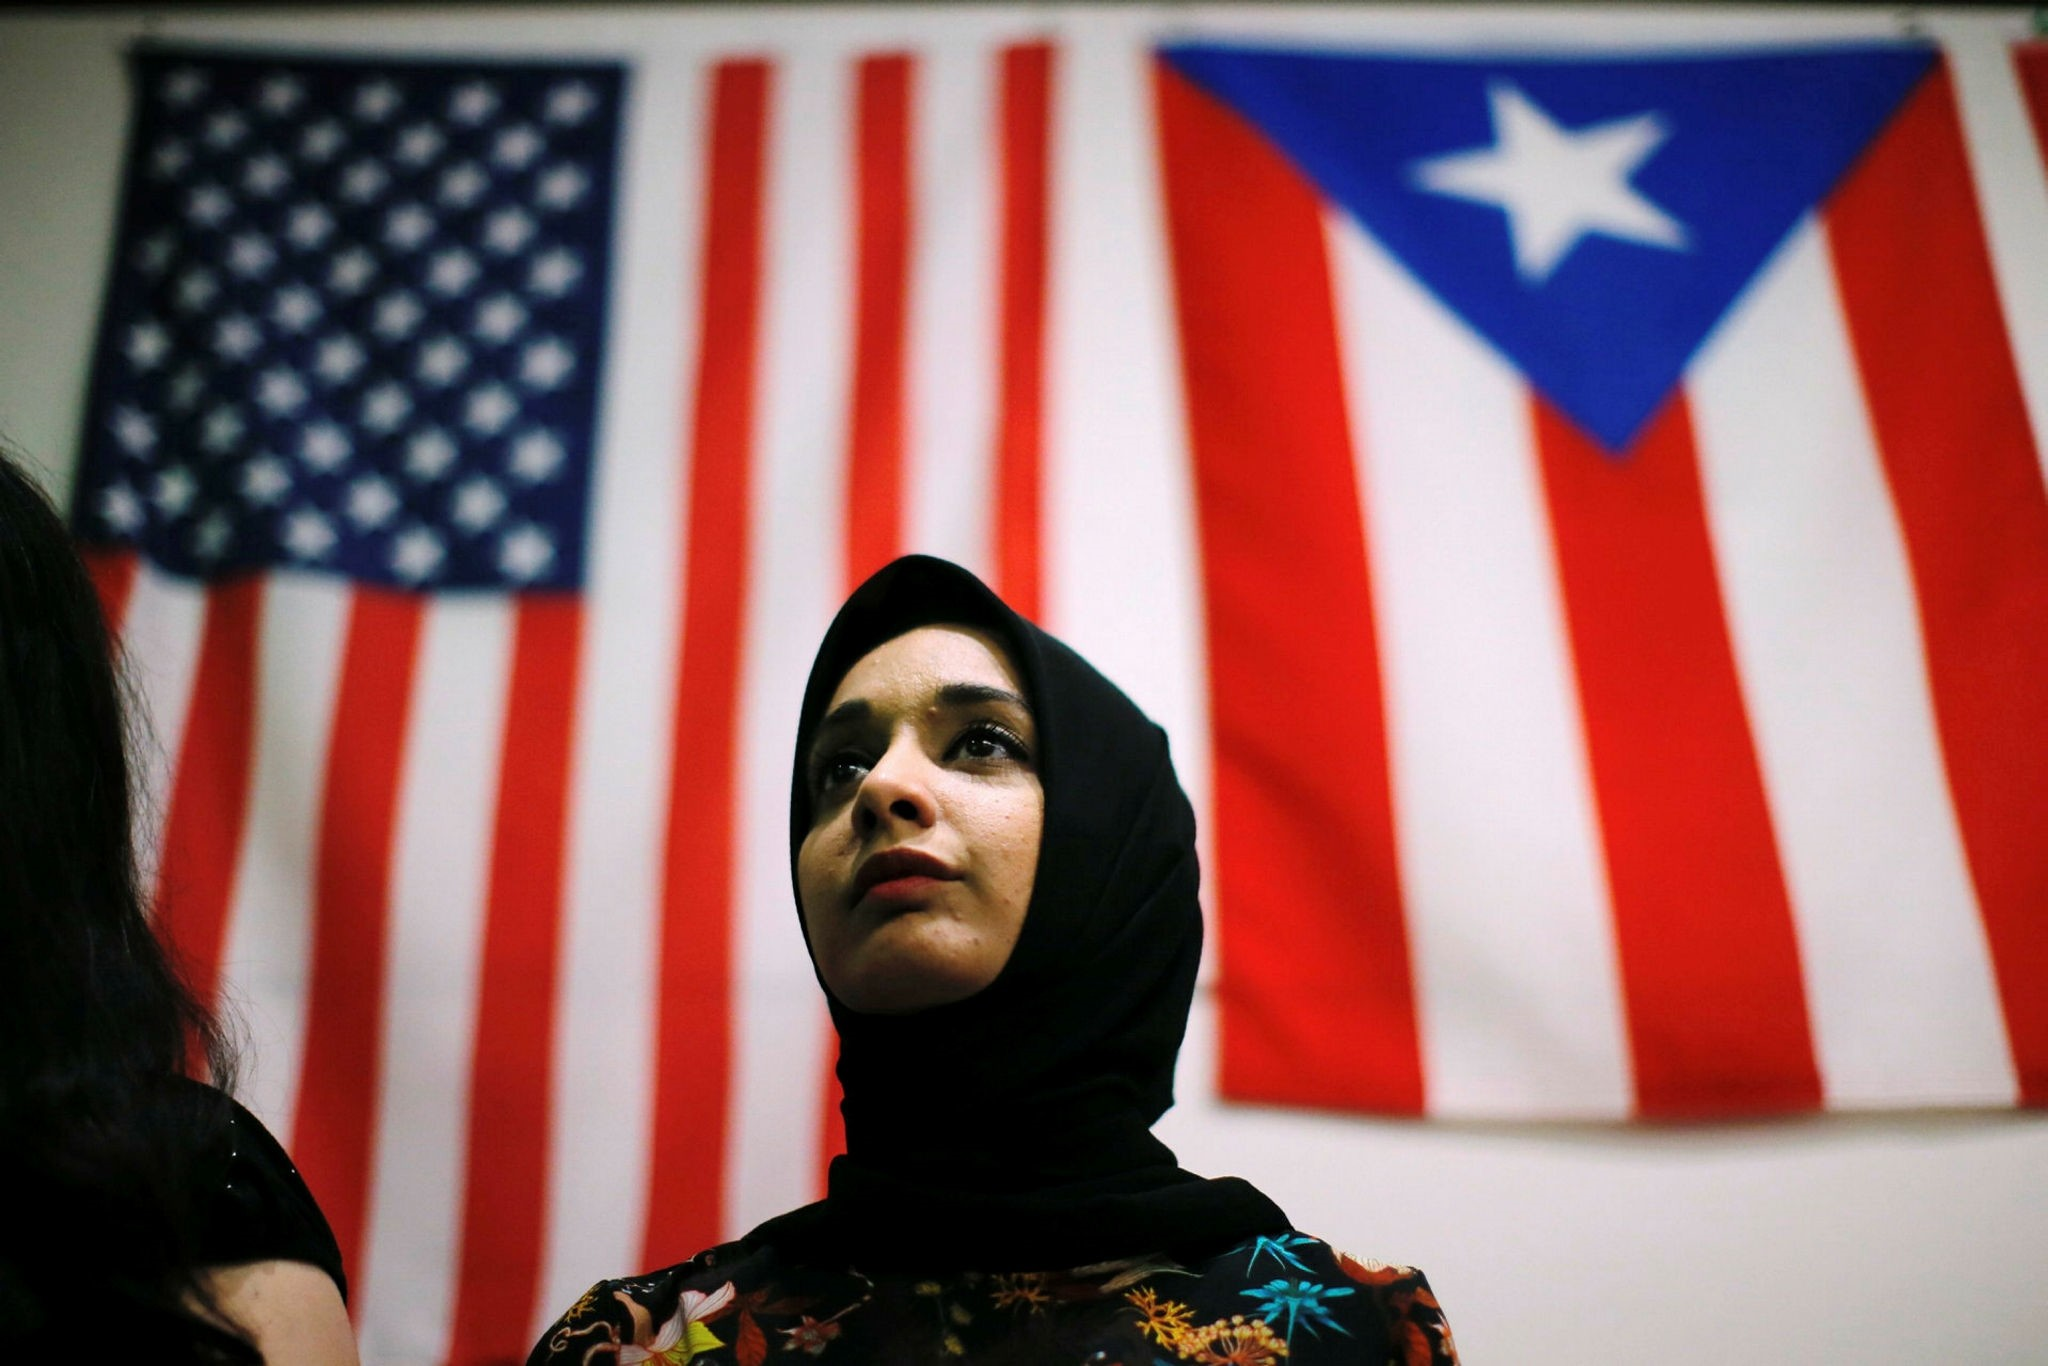 Anti-Muslim hate crimes rose alarmingly in the U.S., according to CAIR, a leading Muslim advocacy group.